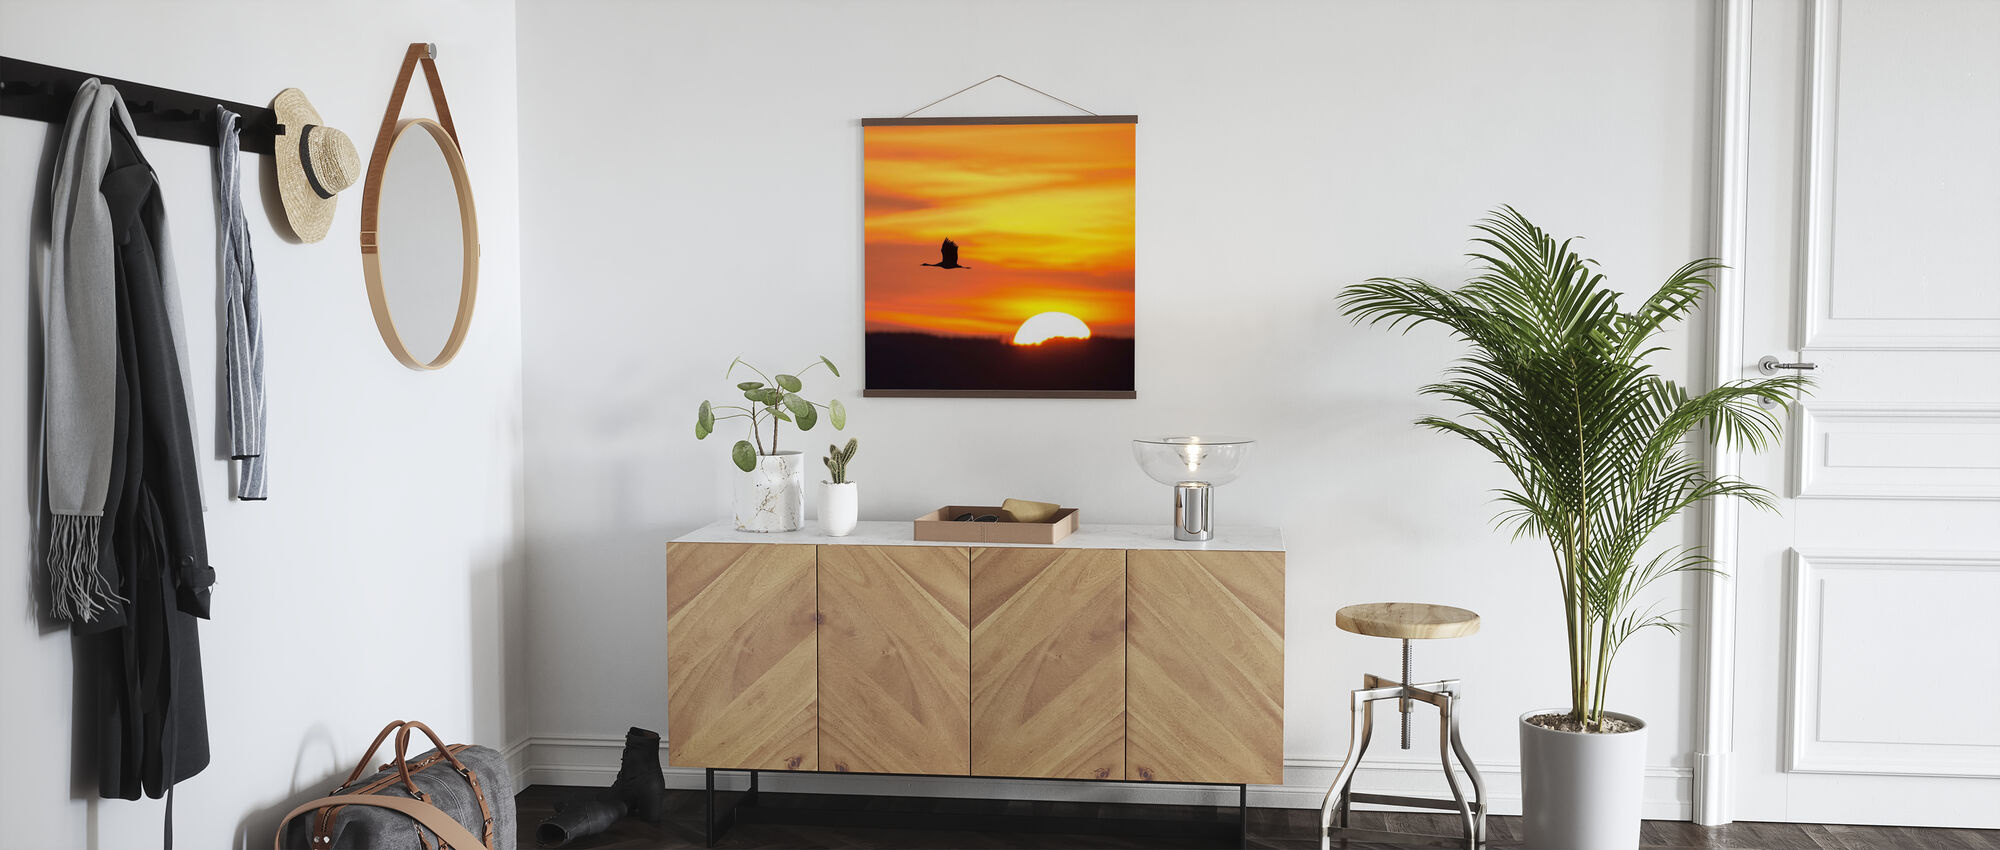 Crane and a Beautiful Sunrise - Poster - Hallway